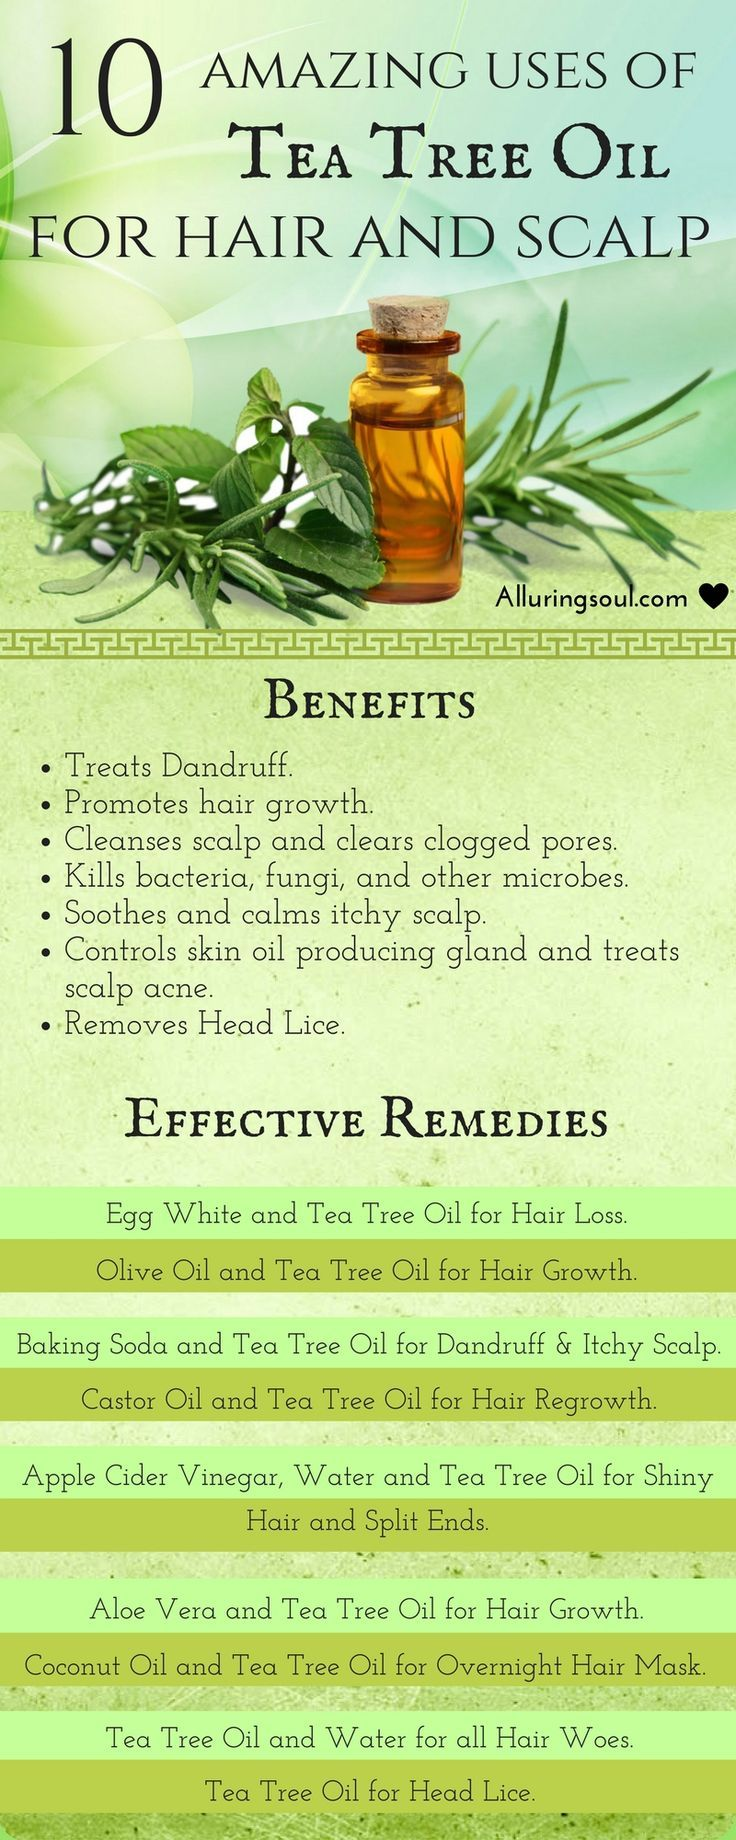 Hair care ideas tea tree oil for hair is considered as one of the